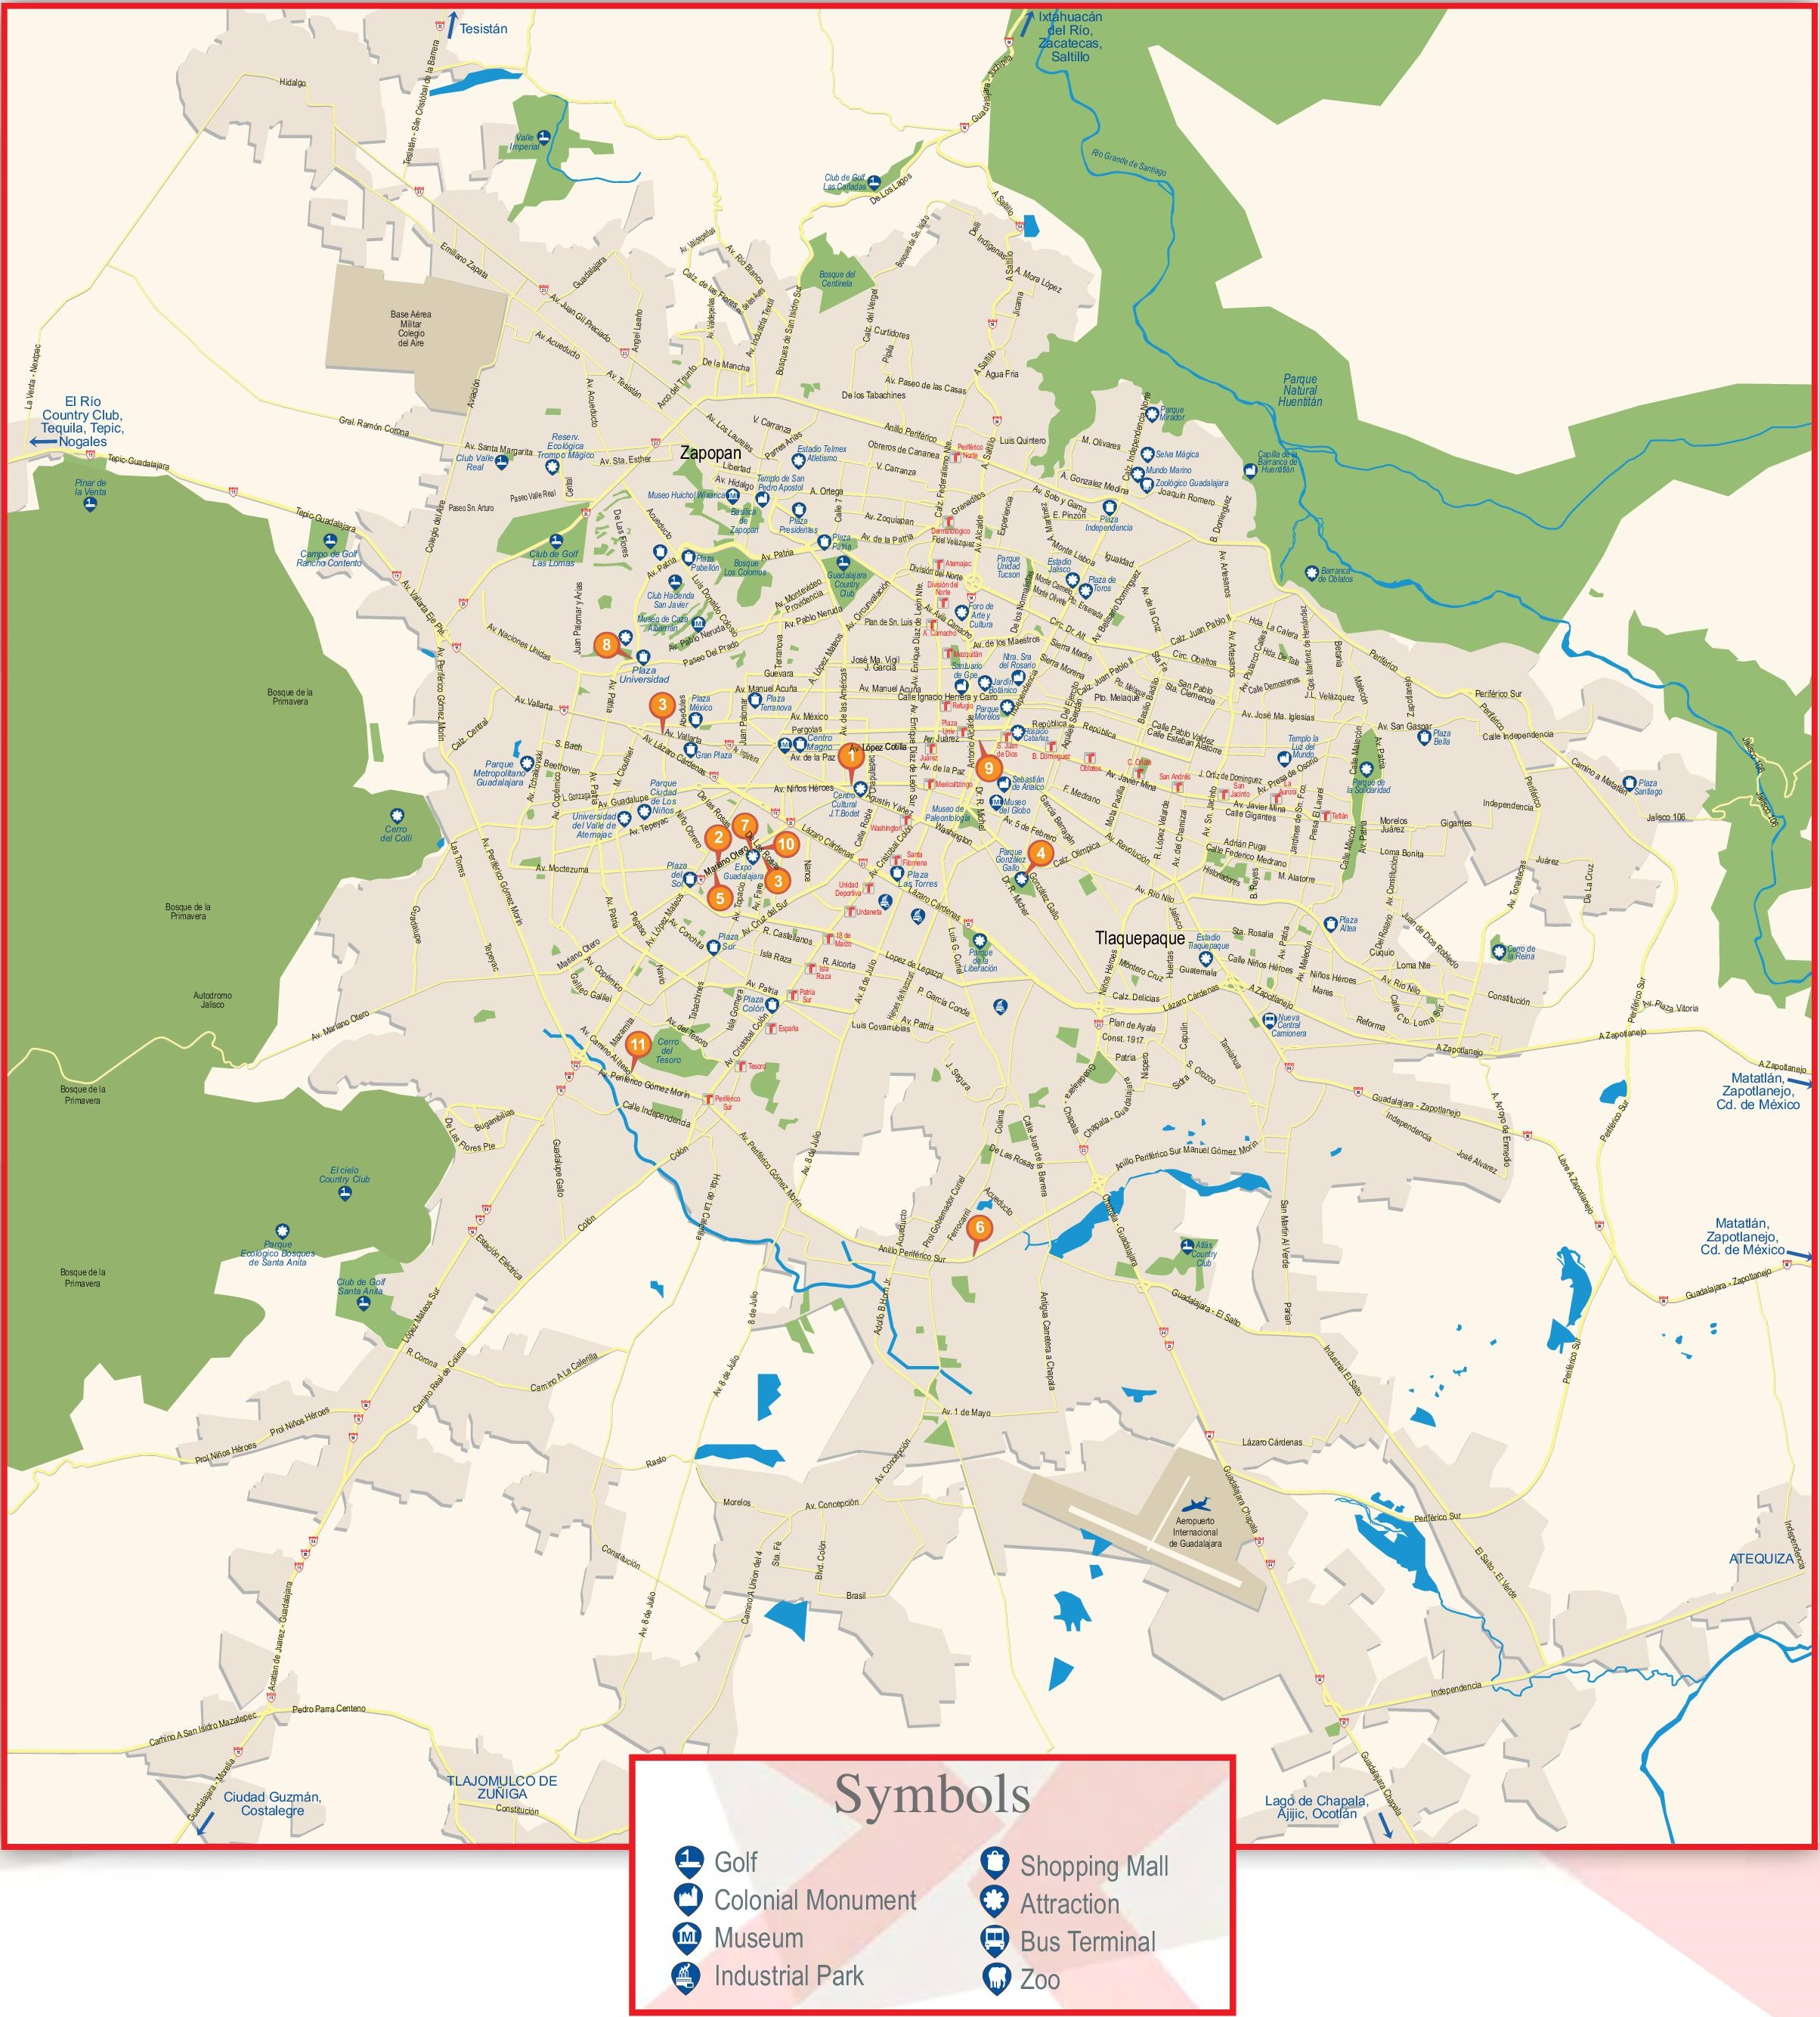 guadalajara tourist attractions map